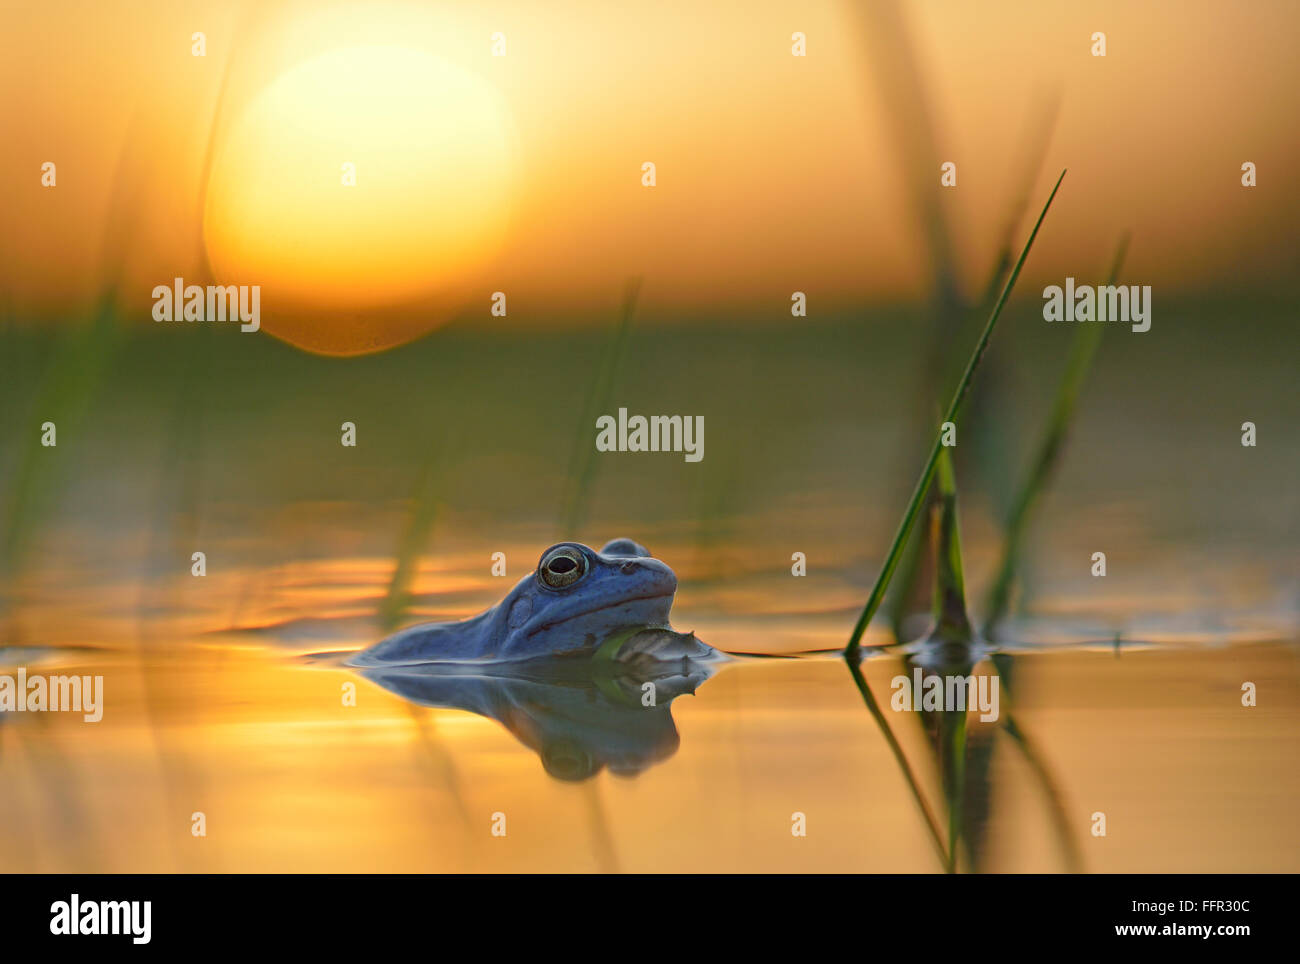 Moor frog (Rana arvalis), blue coloured male during mating season, in spawning waters, sunset, Elbe, Saxony-Anhalt, - Stock Image